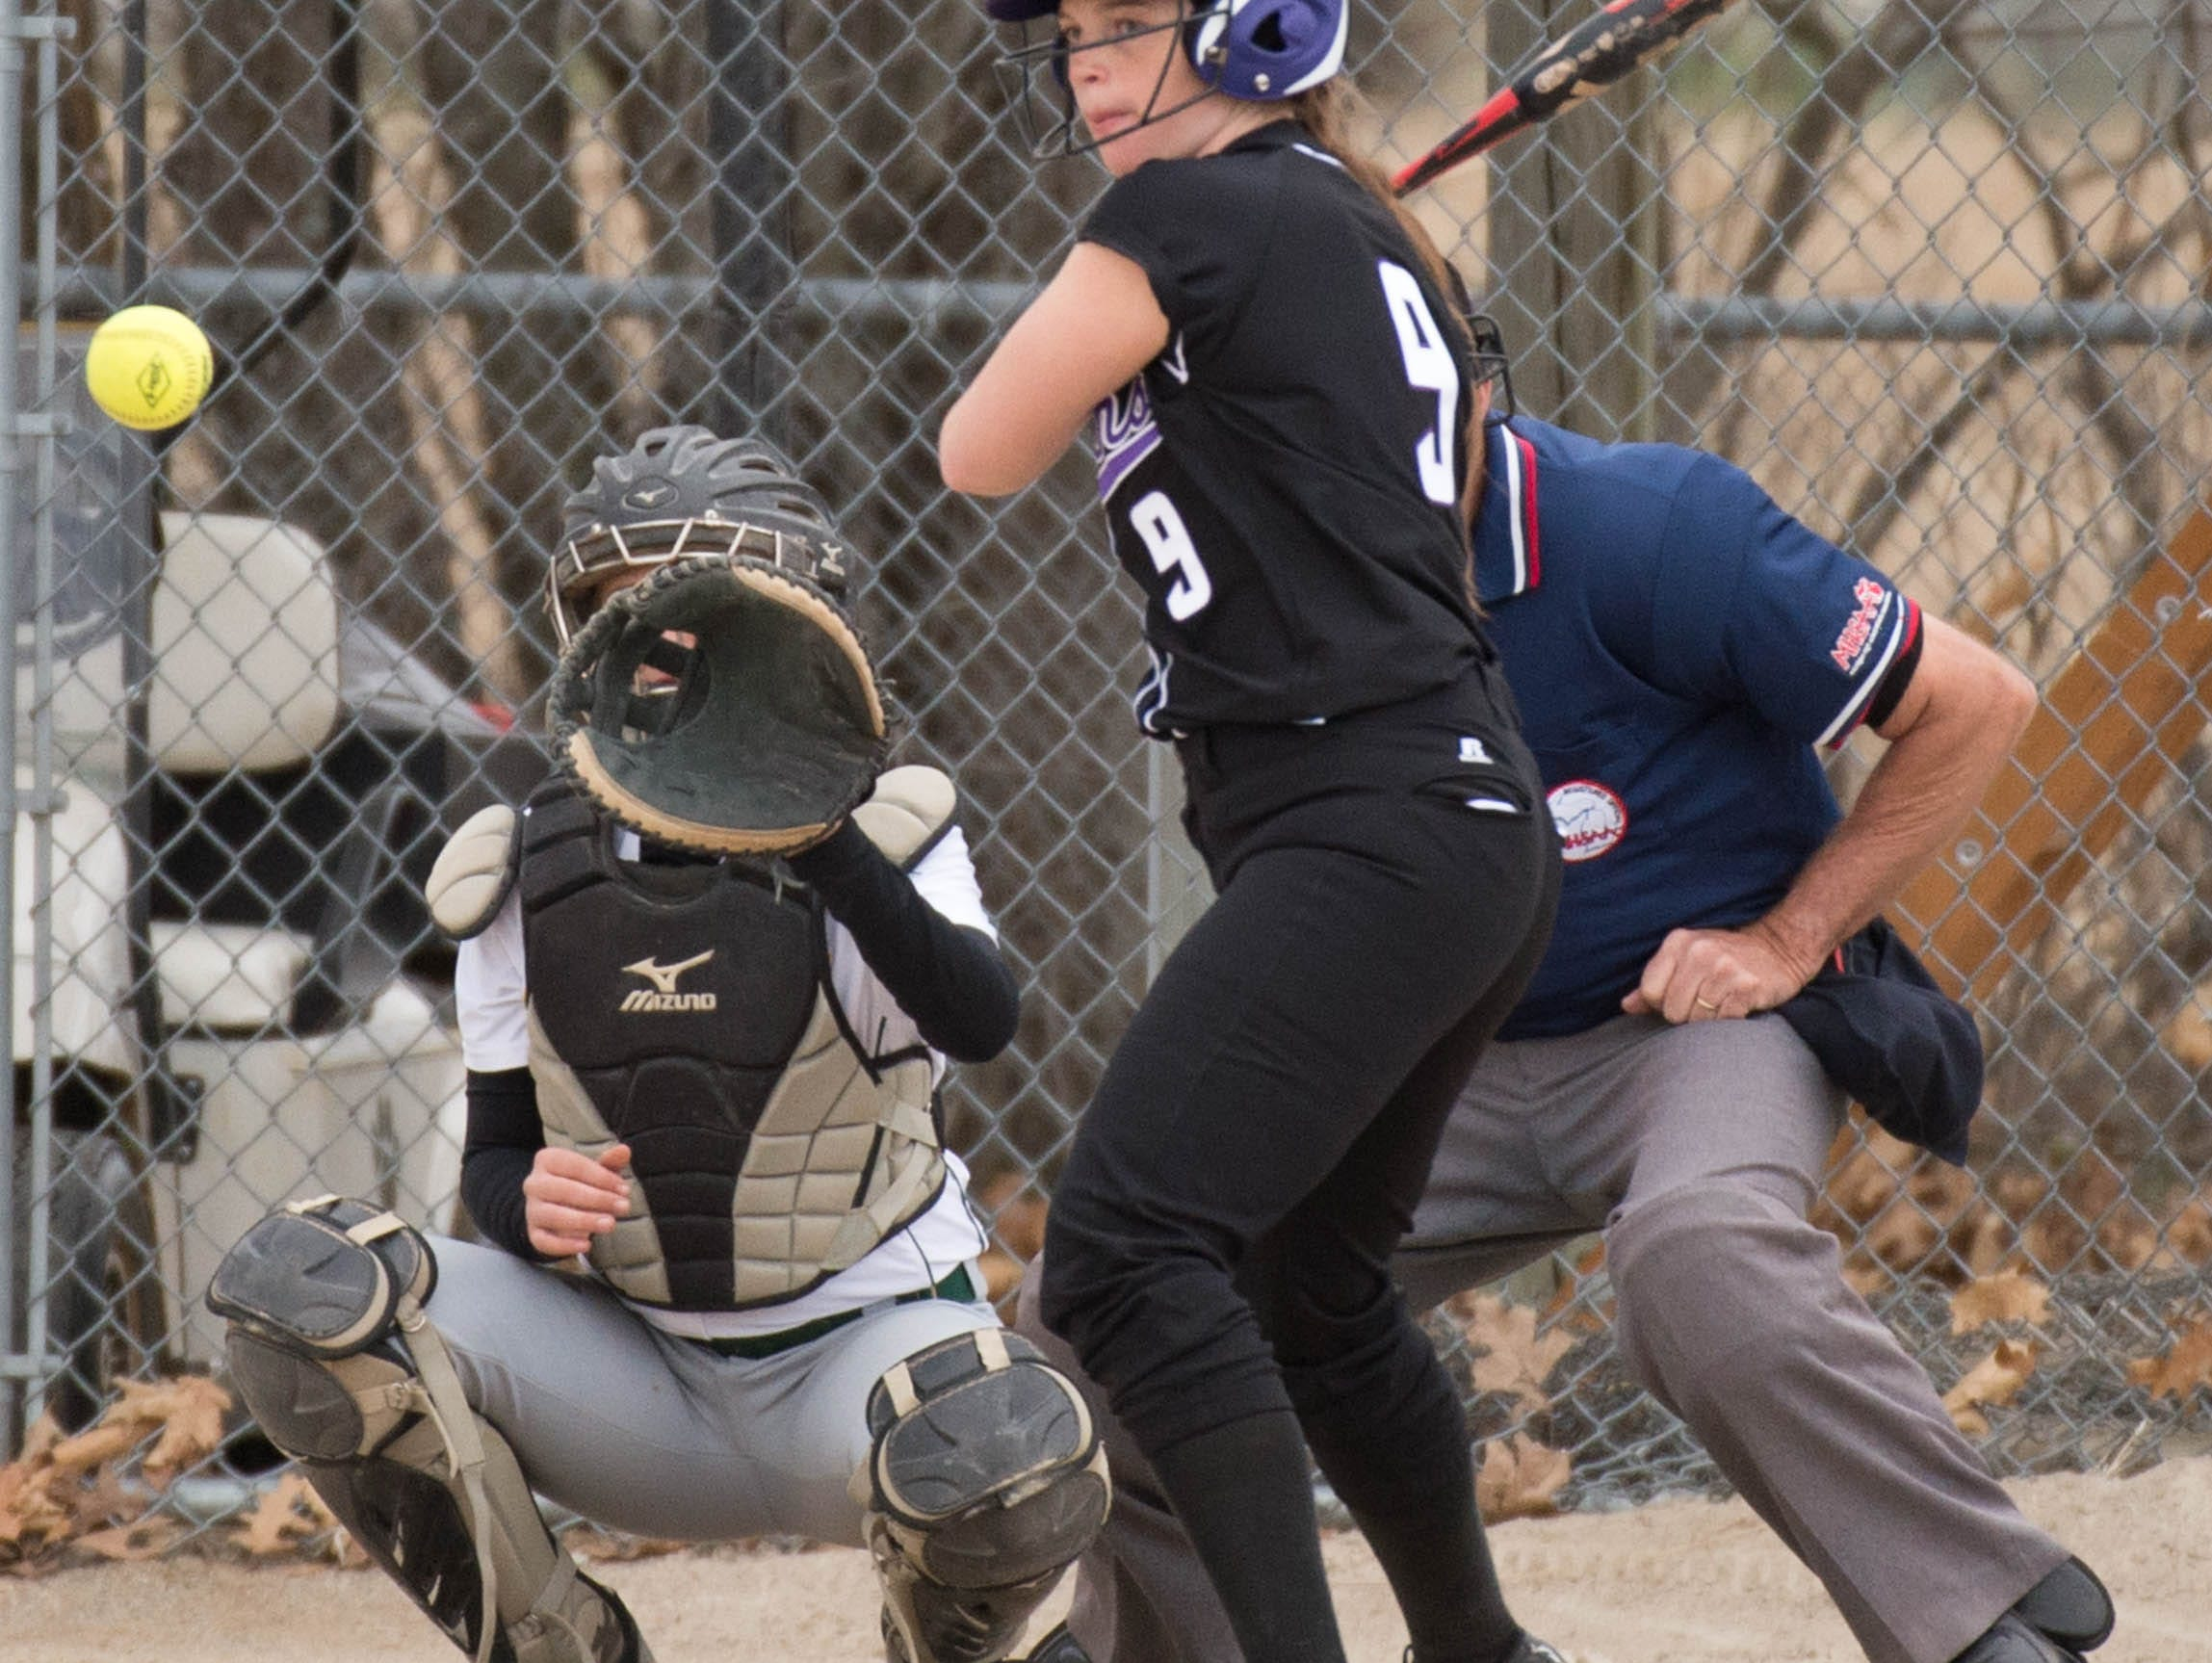 Lakeview's Shelby Sanchez (9) at bat during a recent game against Pennfield.